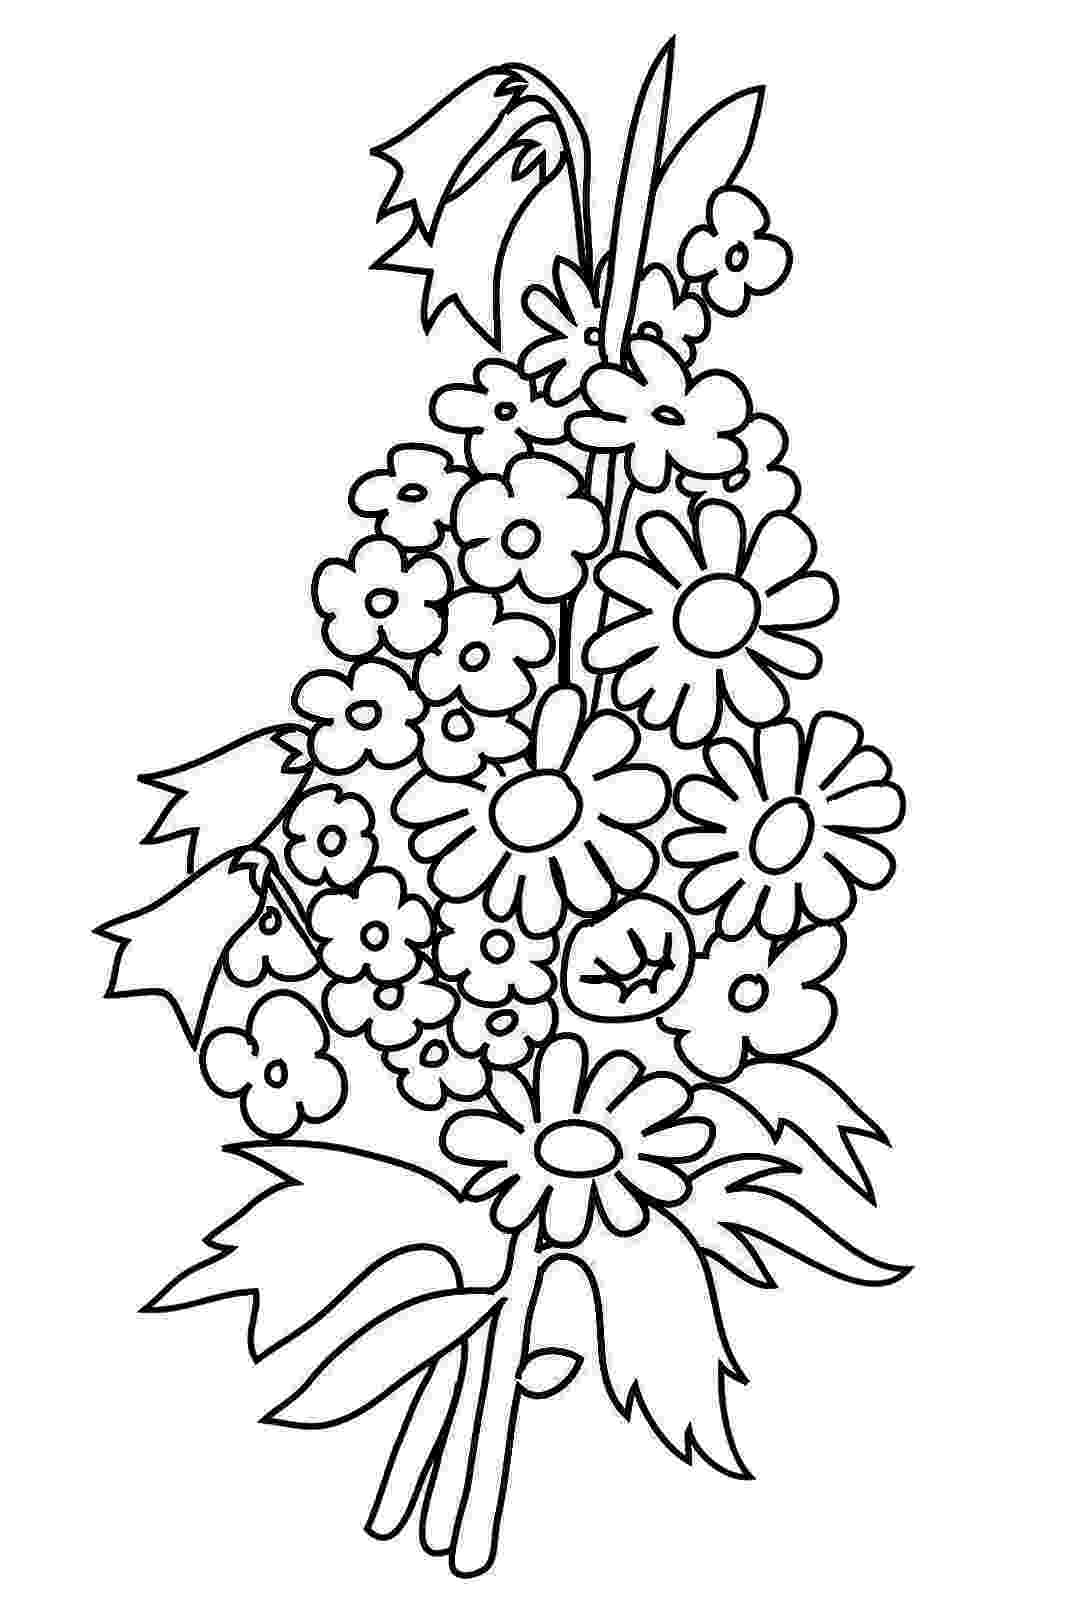 coloring flowers flower coloring pages flowers coloring 1 1